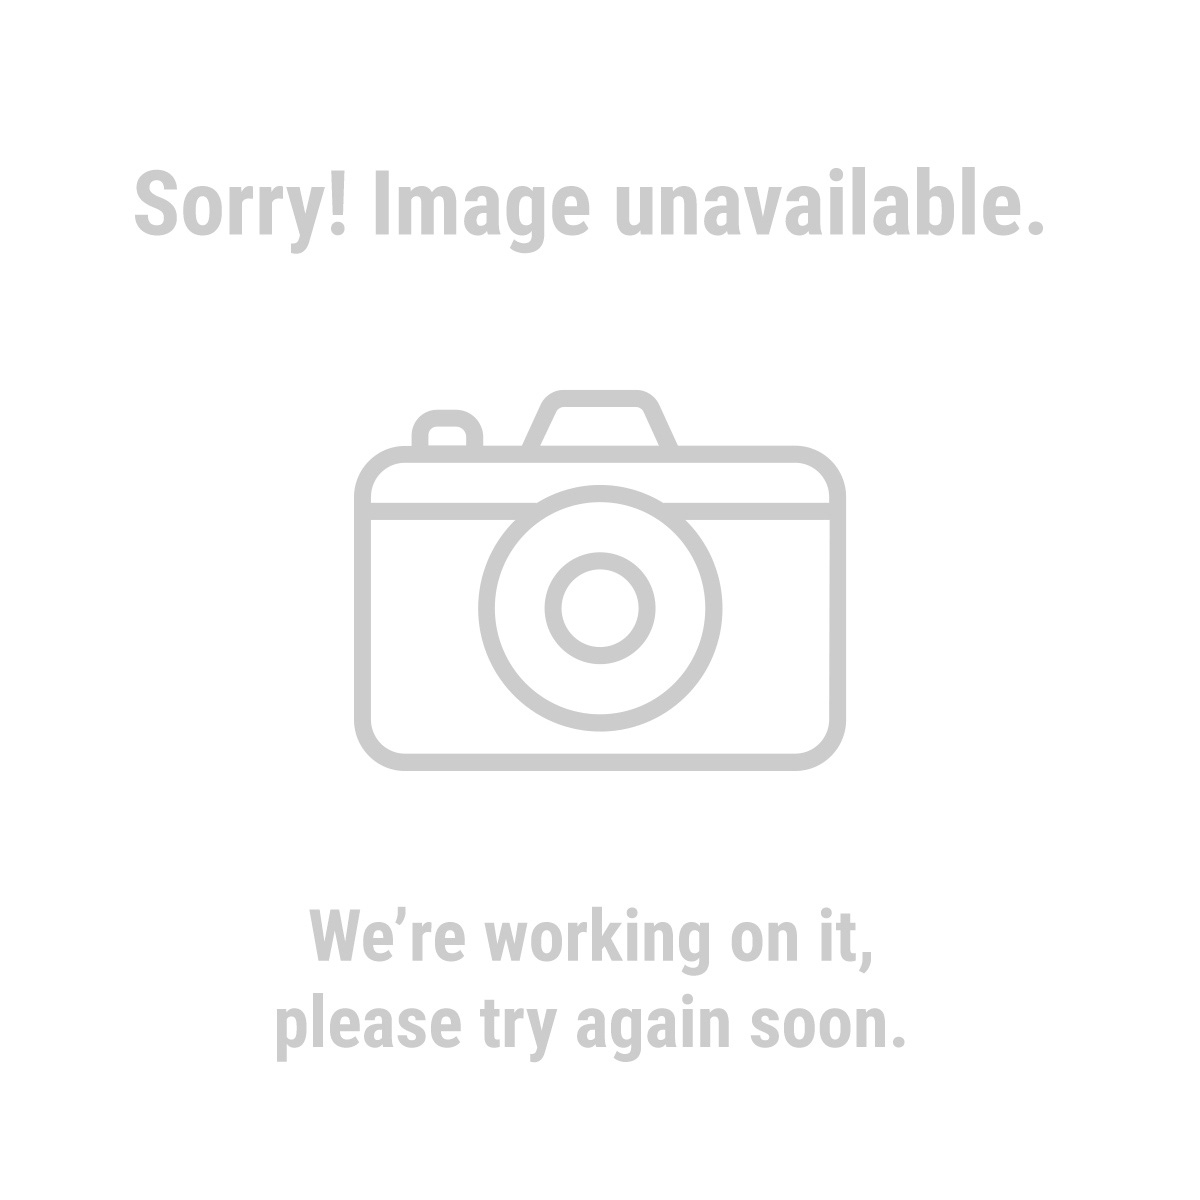 Cen-Tech 1701 Multi-Square